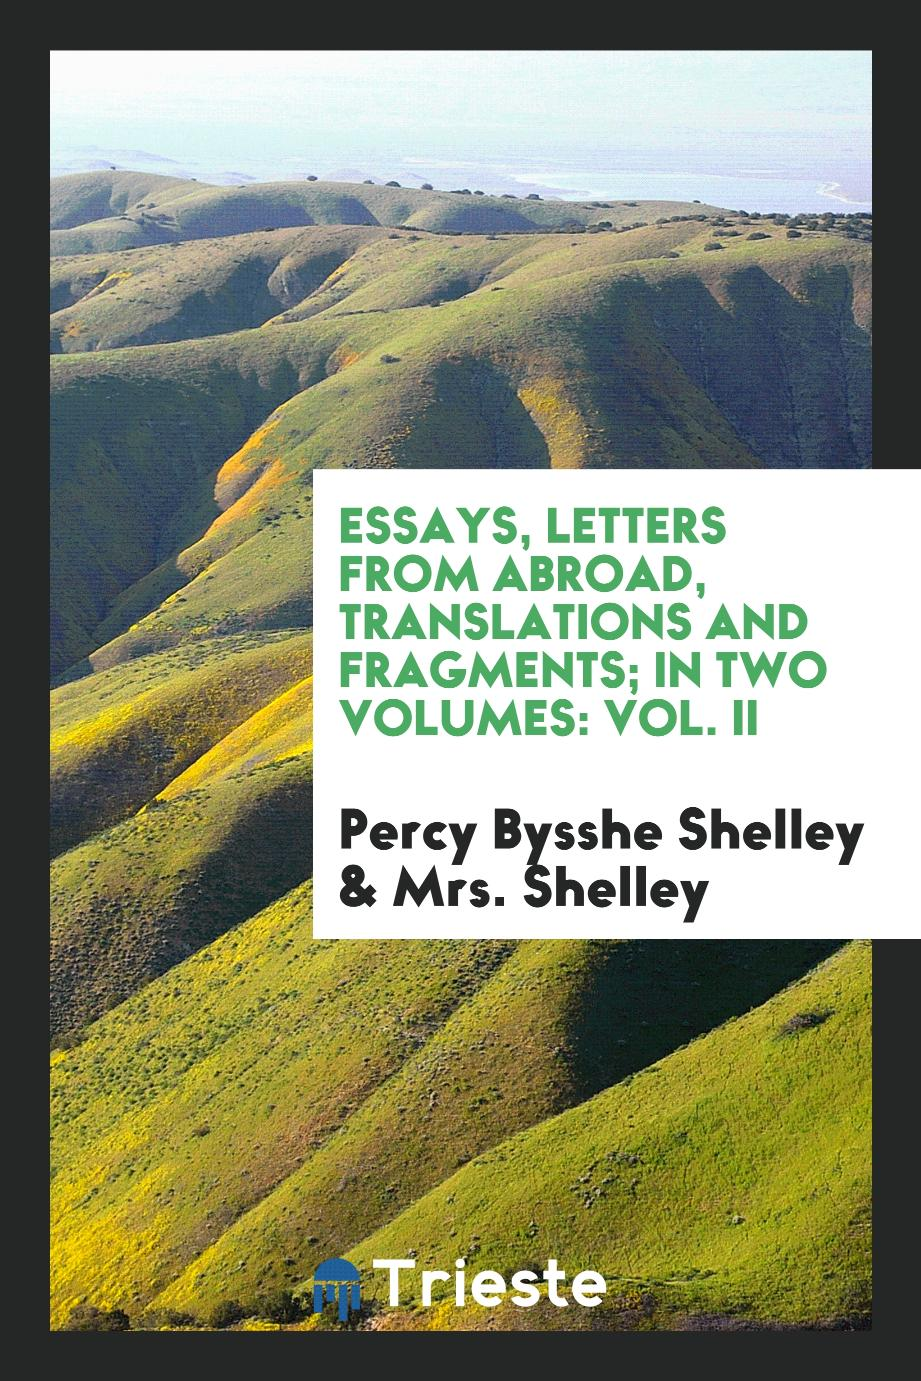 Essays, Letters from Abroad, Translations and Fragments; In Two Volumes: Vol. II